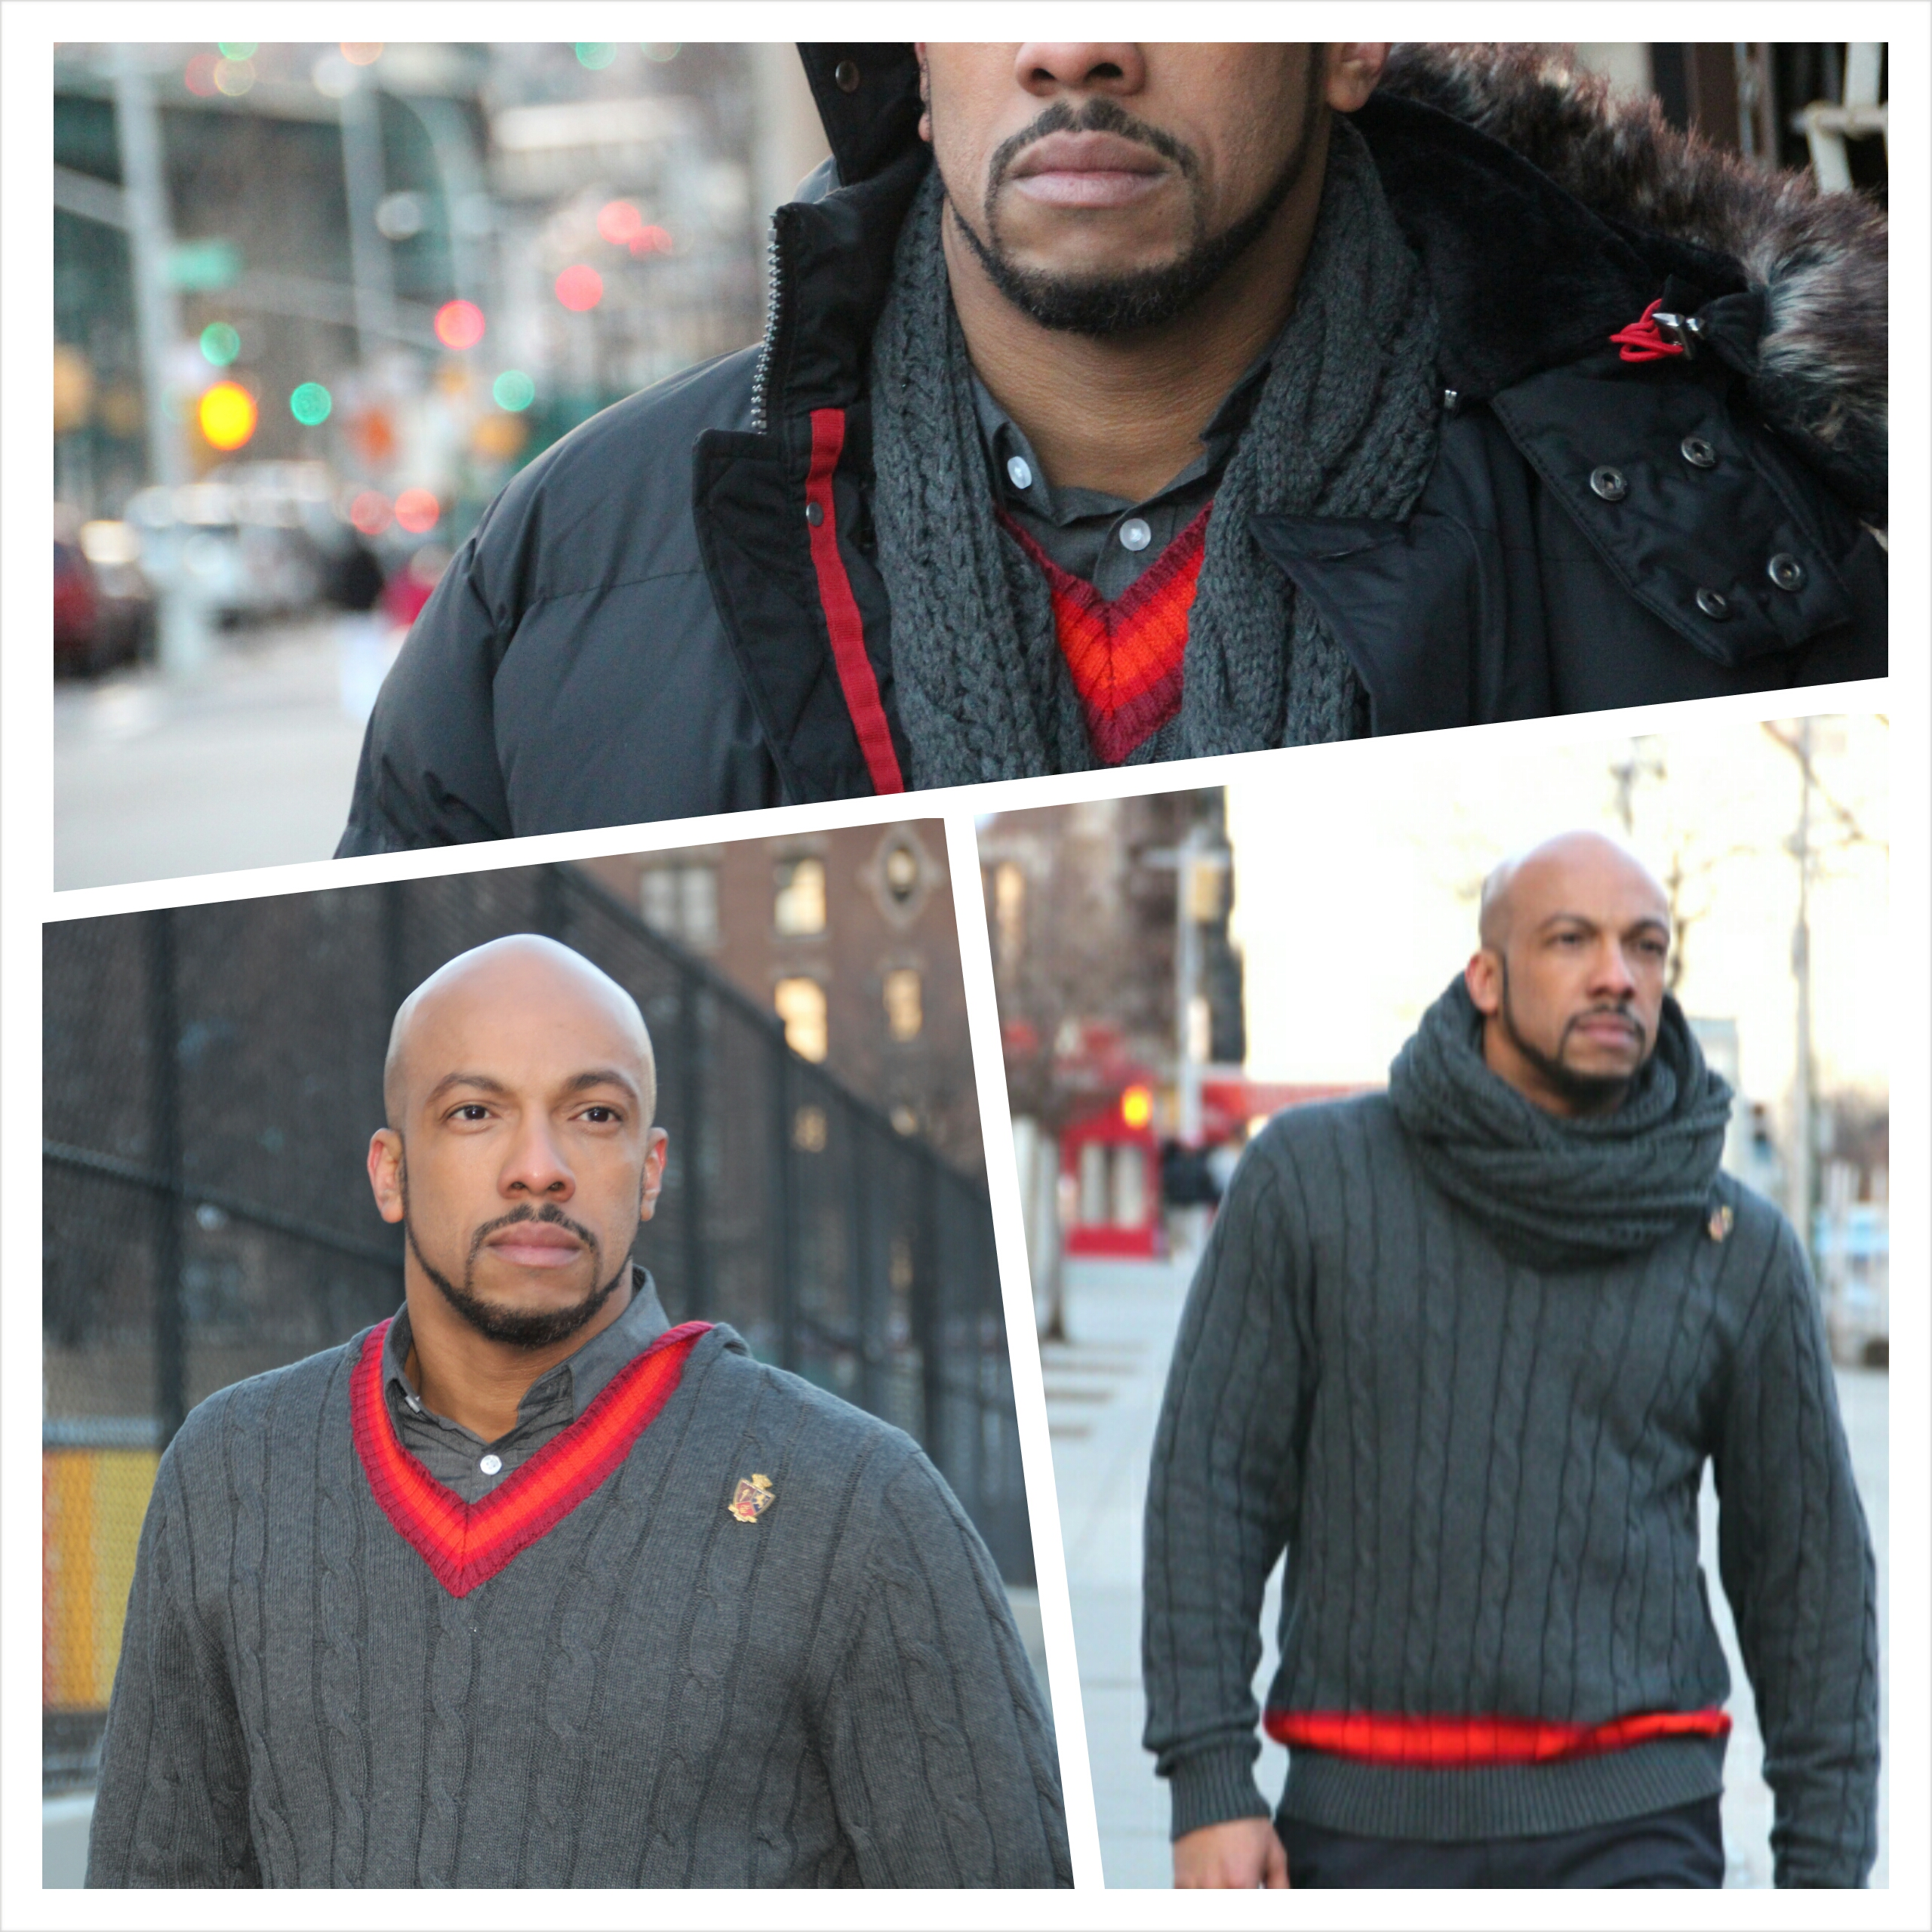 #common #bet #rockmonddunbar #movies #actors #commonrapper #commonactor